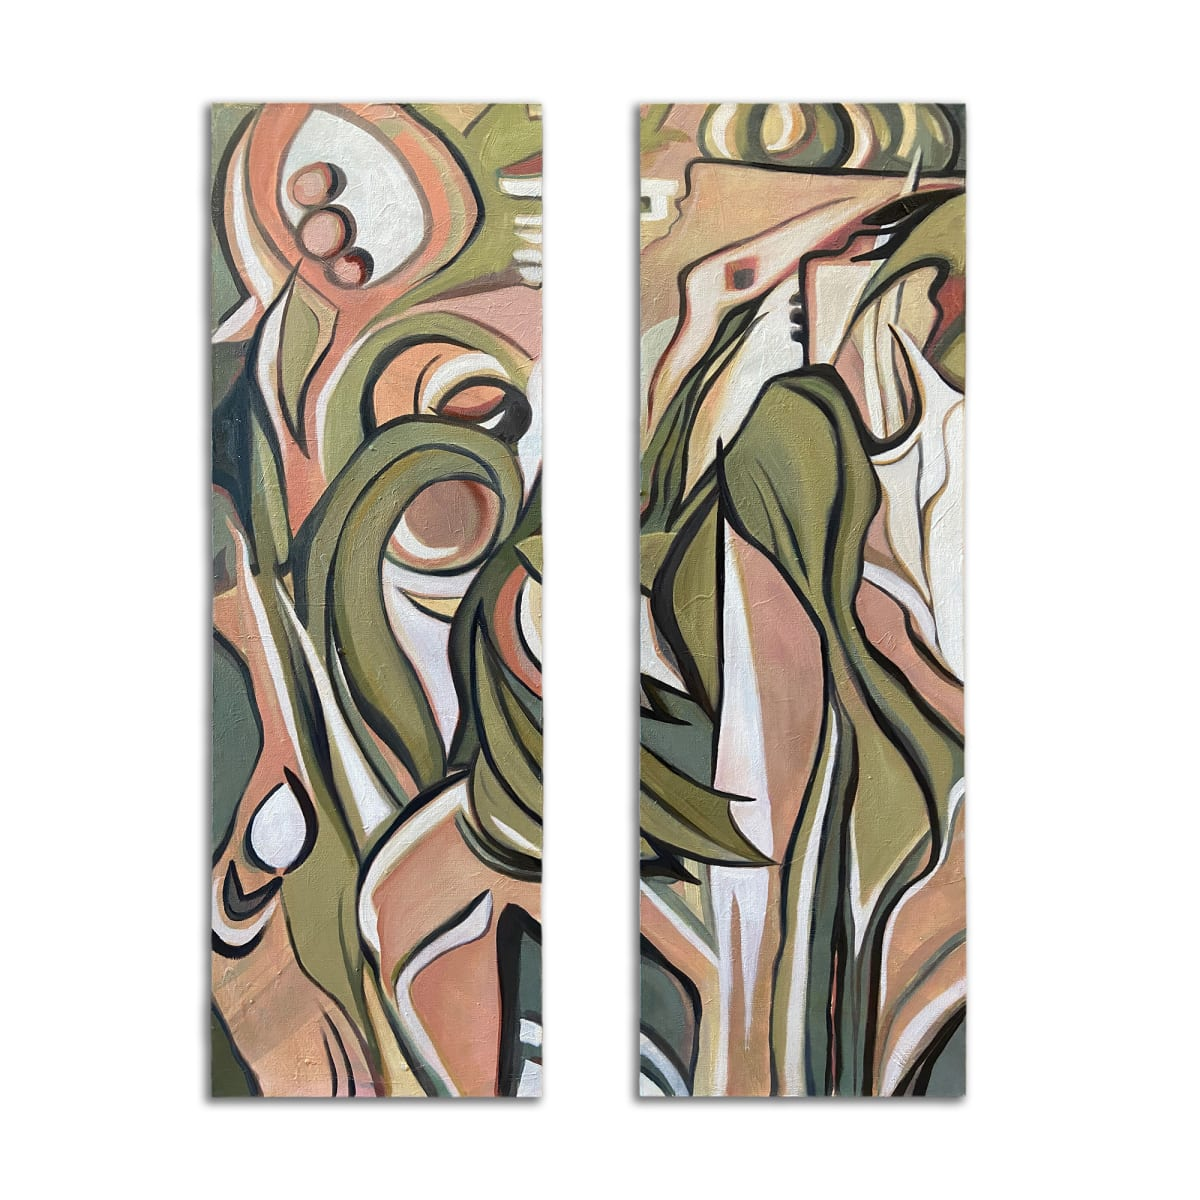 Symbiosis: After Lee Krasner's Birth (1956) by Christie Snelson